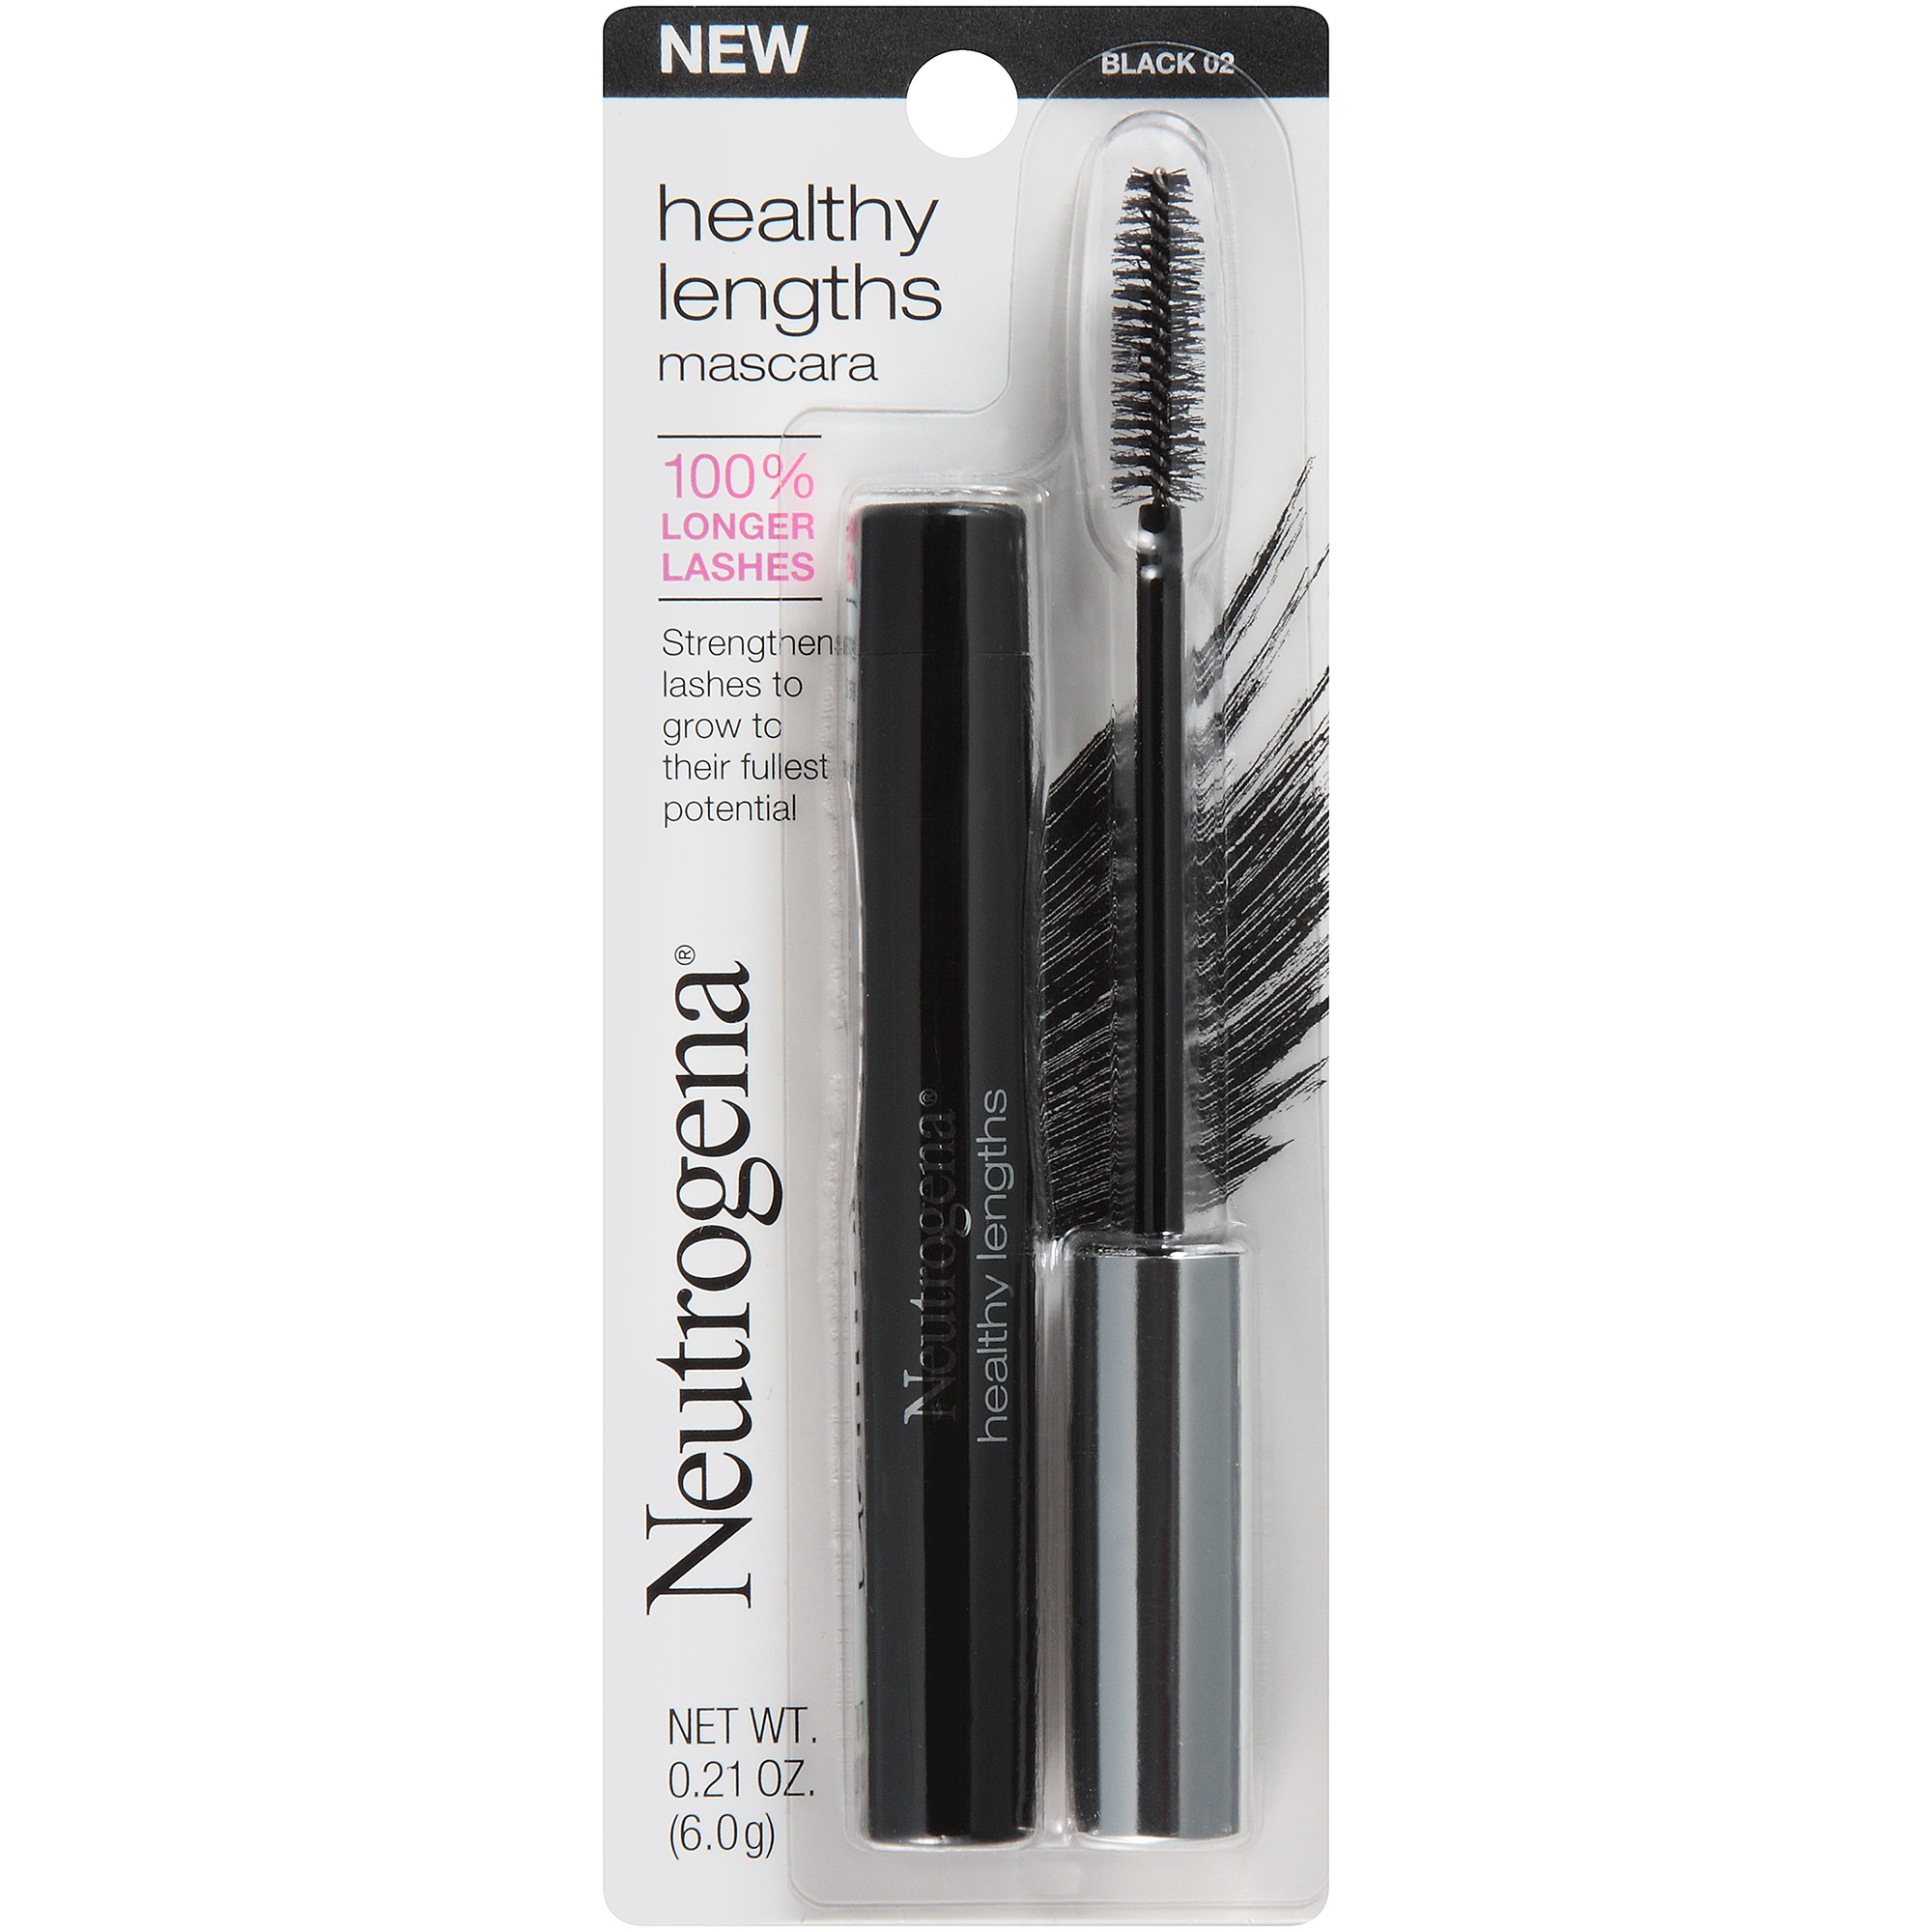 Neutrogena Healthy Lengths Mascara, Black 02, .21 Oz